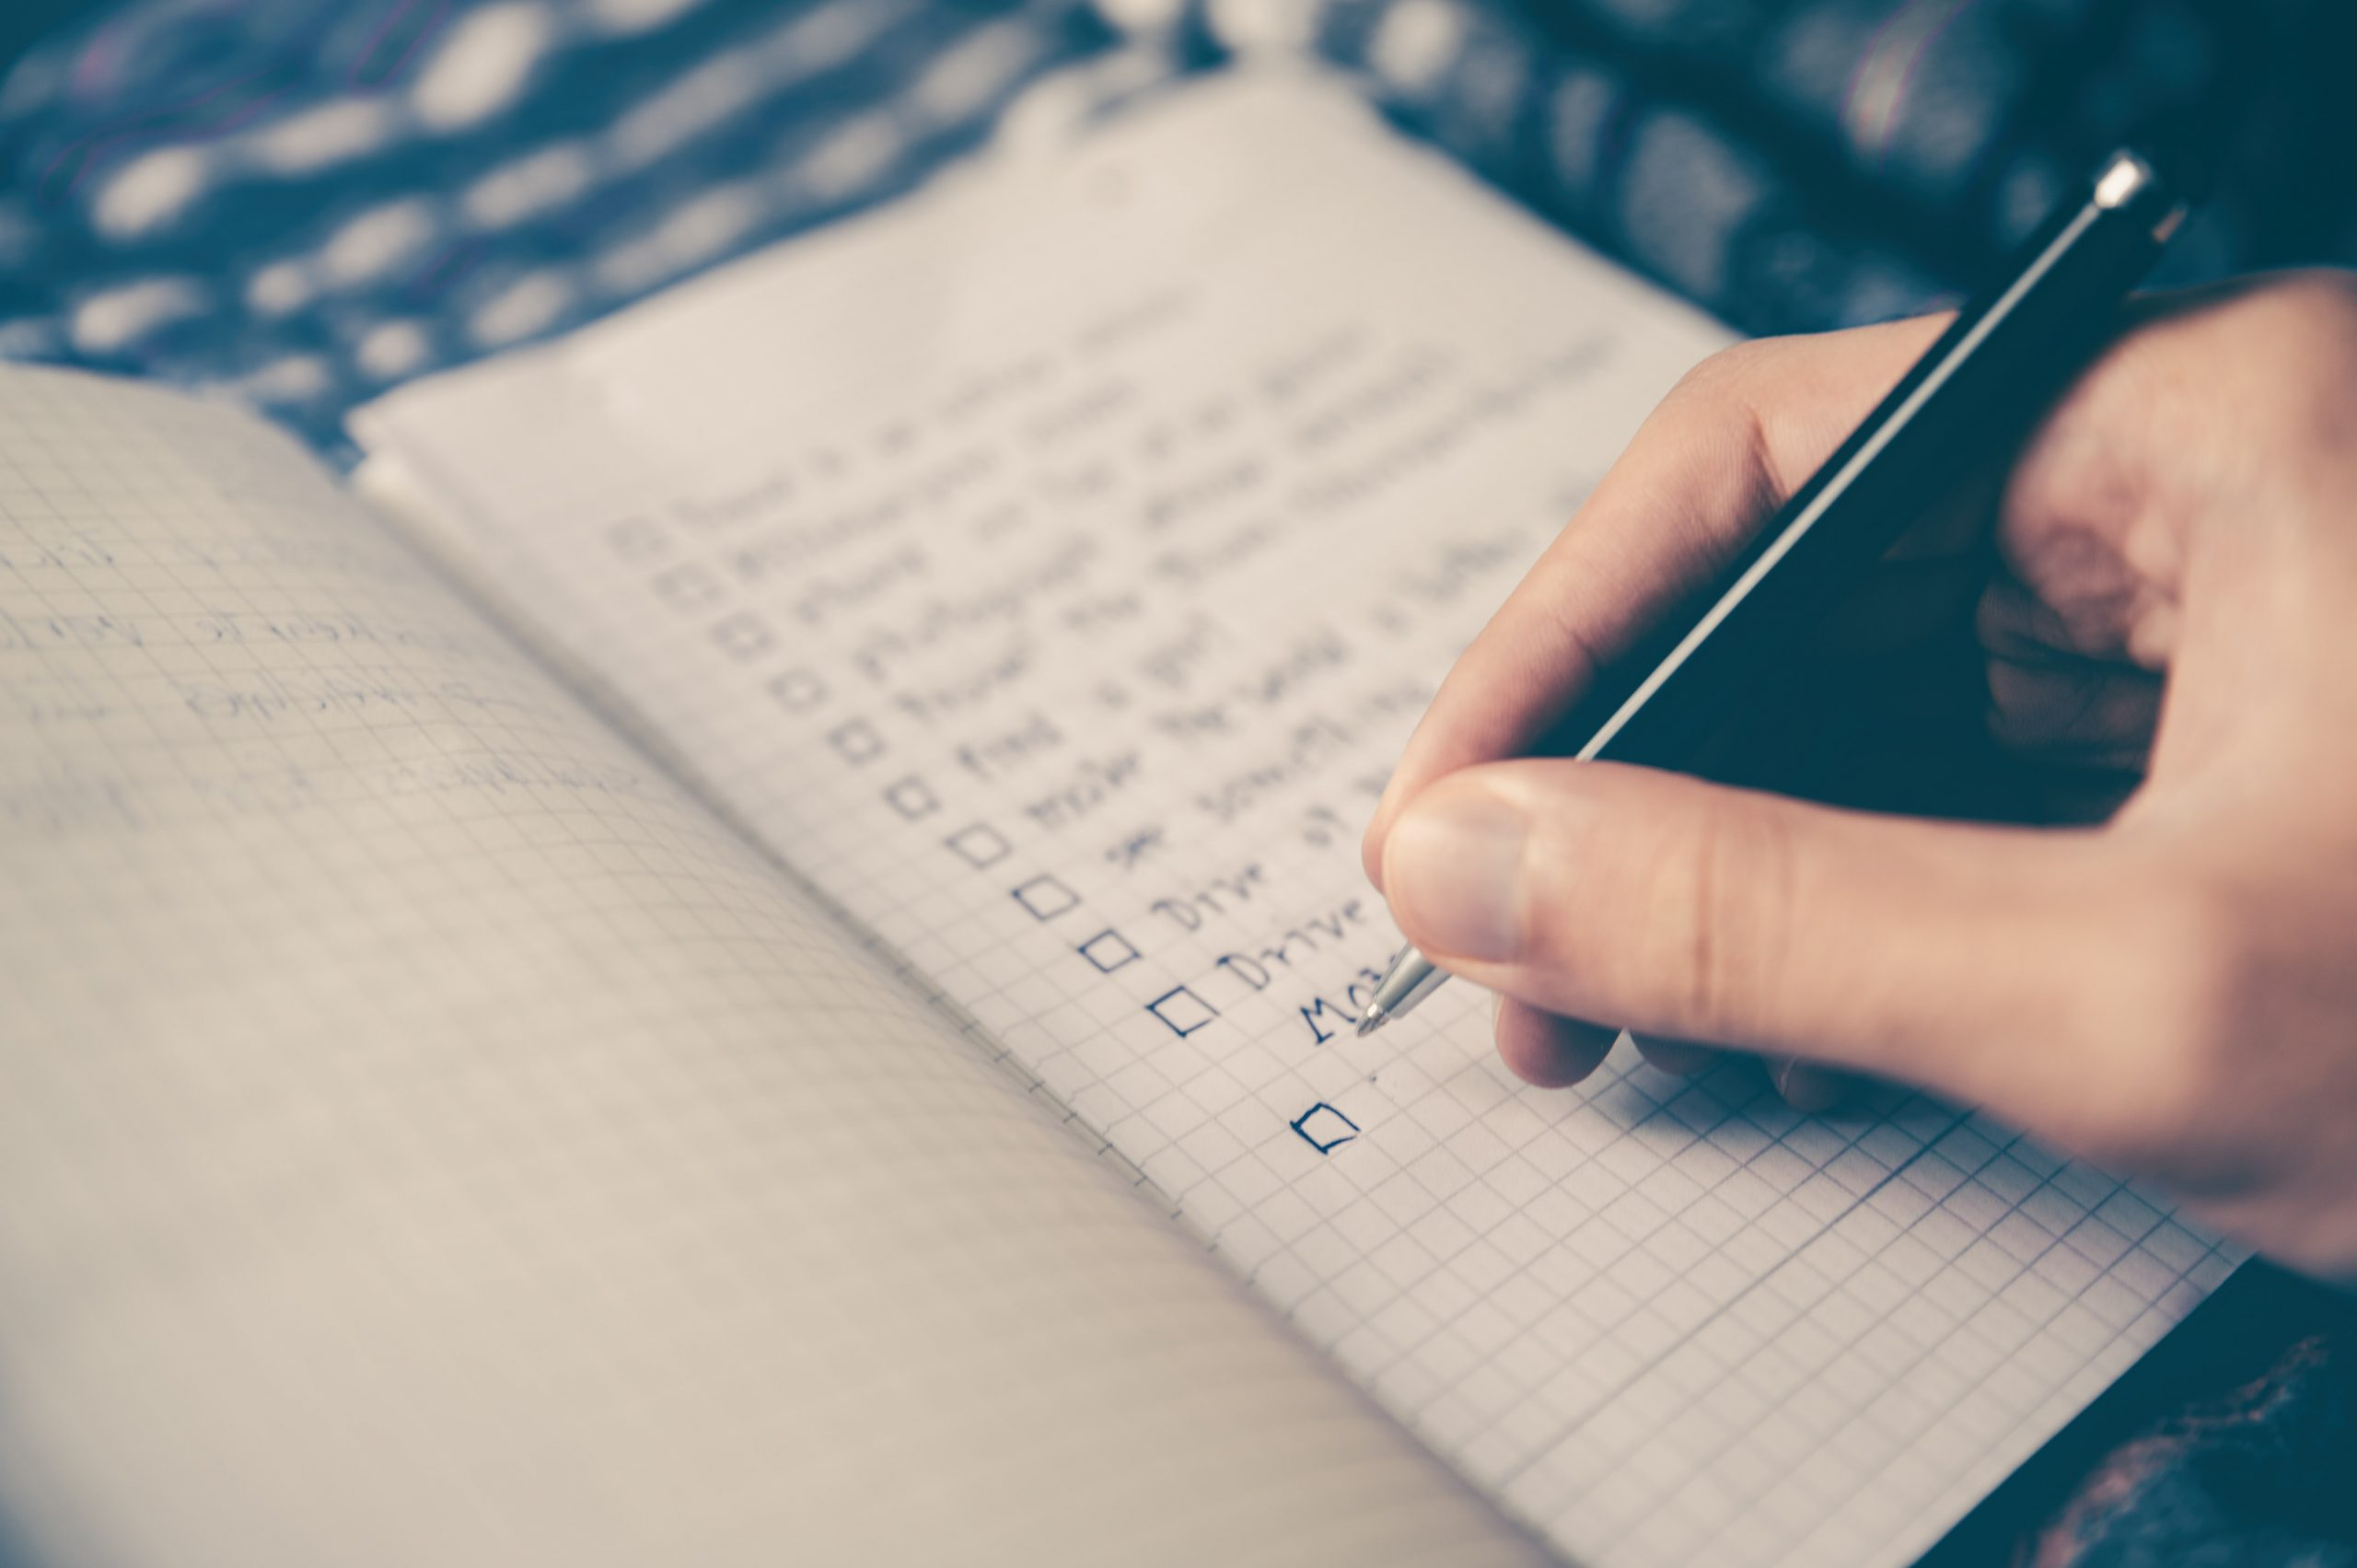 Close up of someone's hand writing a checklist in a notebook